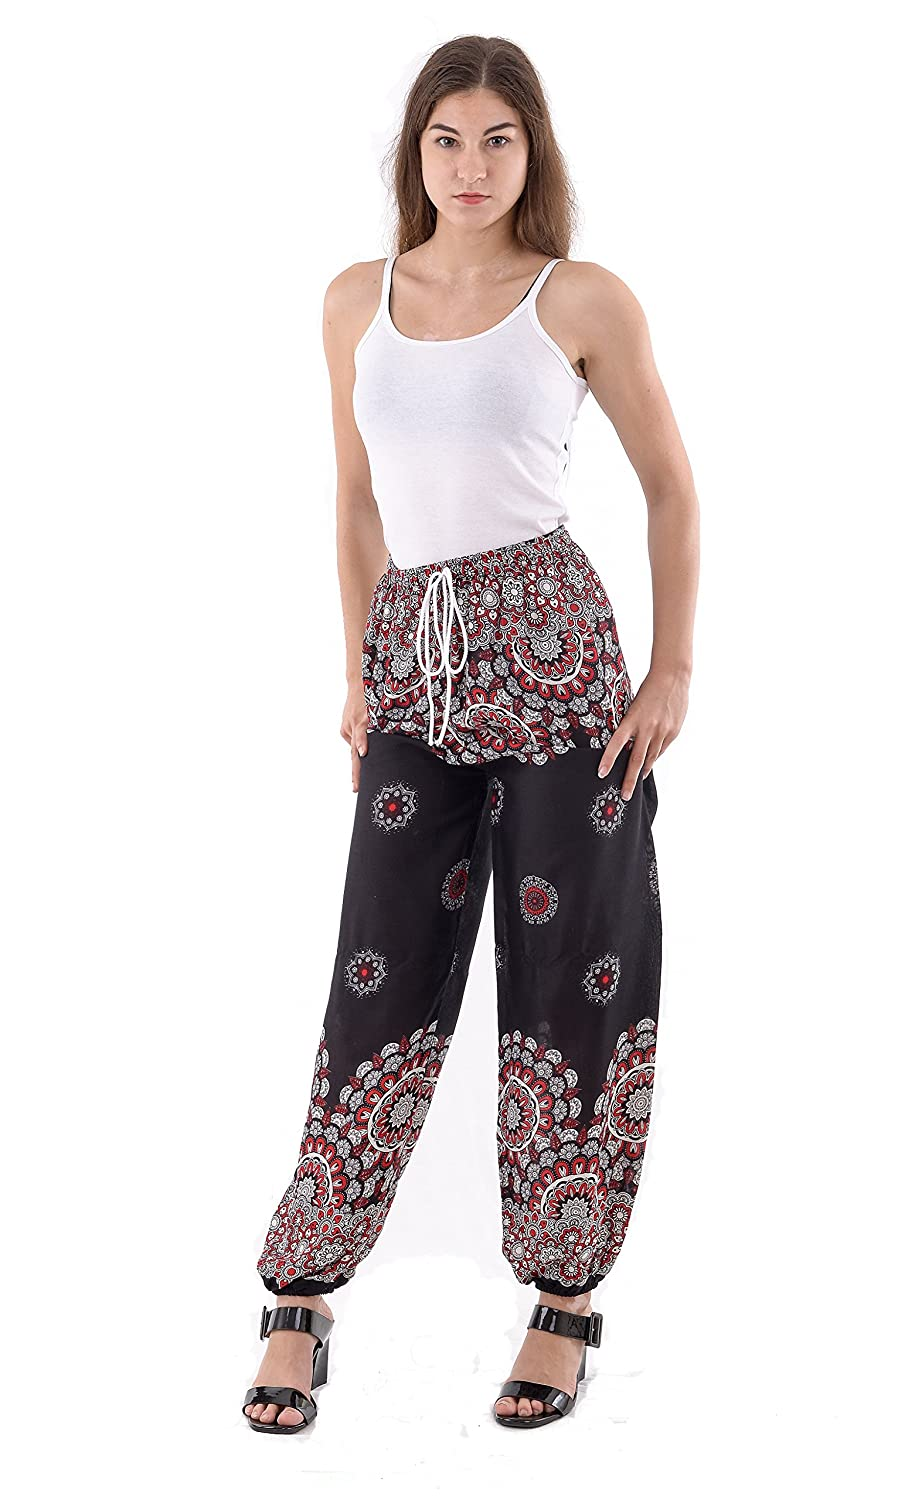 59b6c19239696 Comfortable, Lightweight, Breathable 100% Rayon Free Size fits equivalent  US sizes 0-14 (XS to L) Attractive and with bright colors OaSa pants are a  great ...